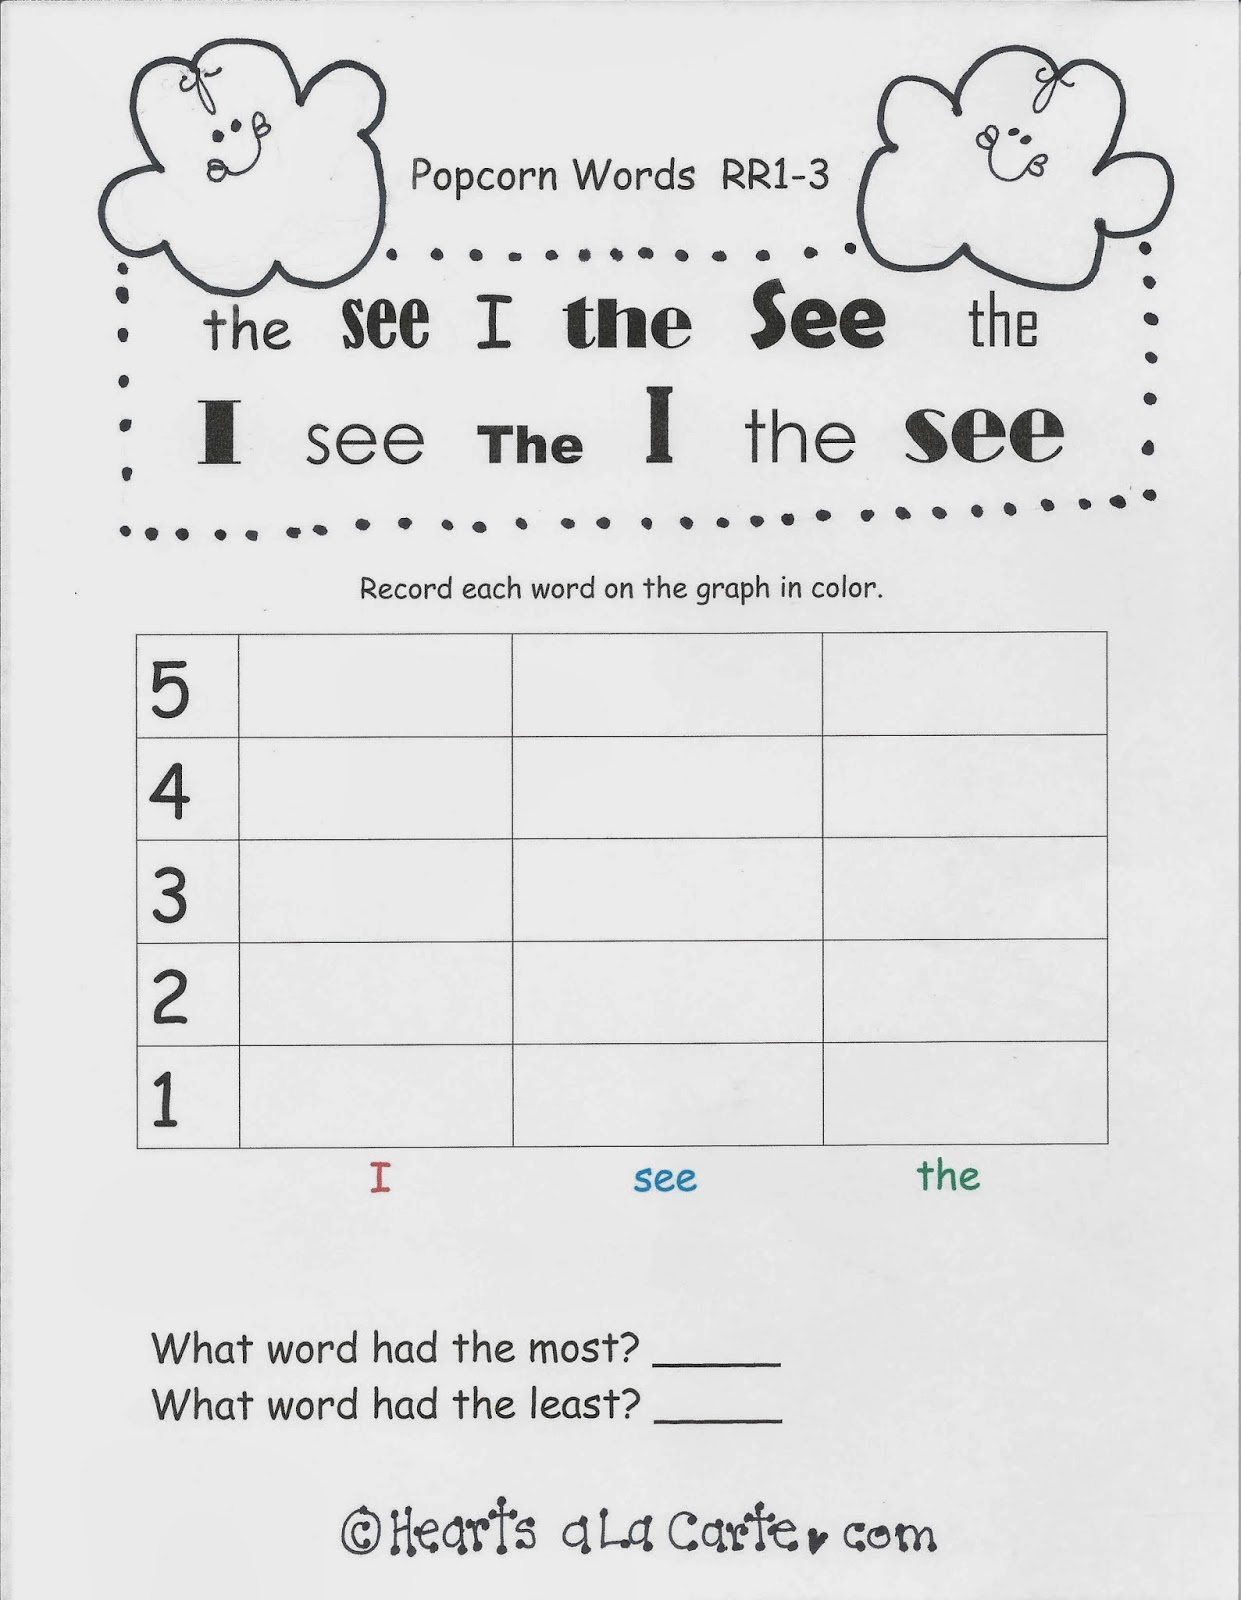 words graph - Template